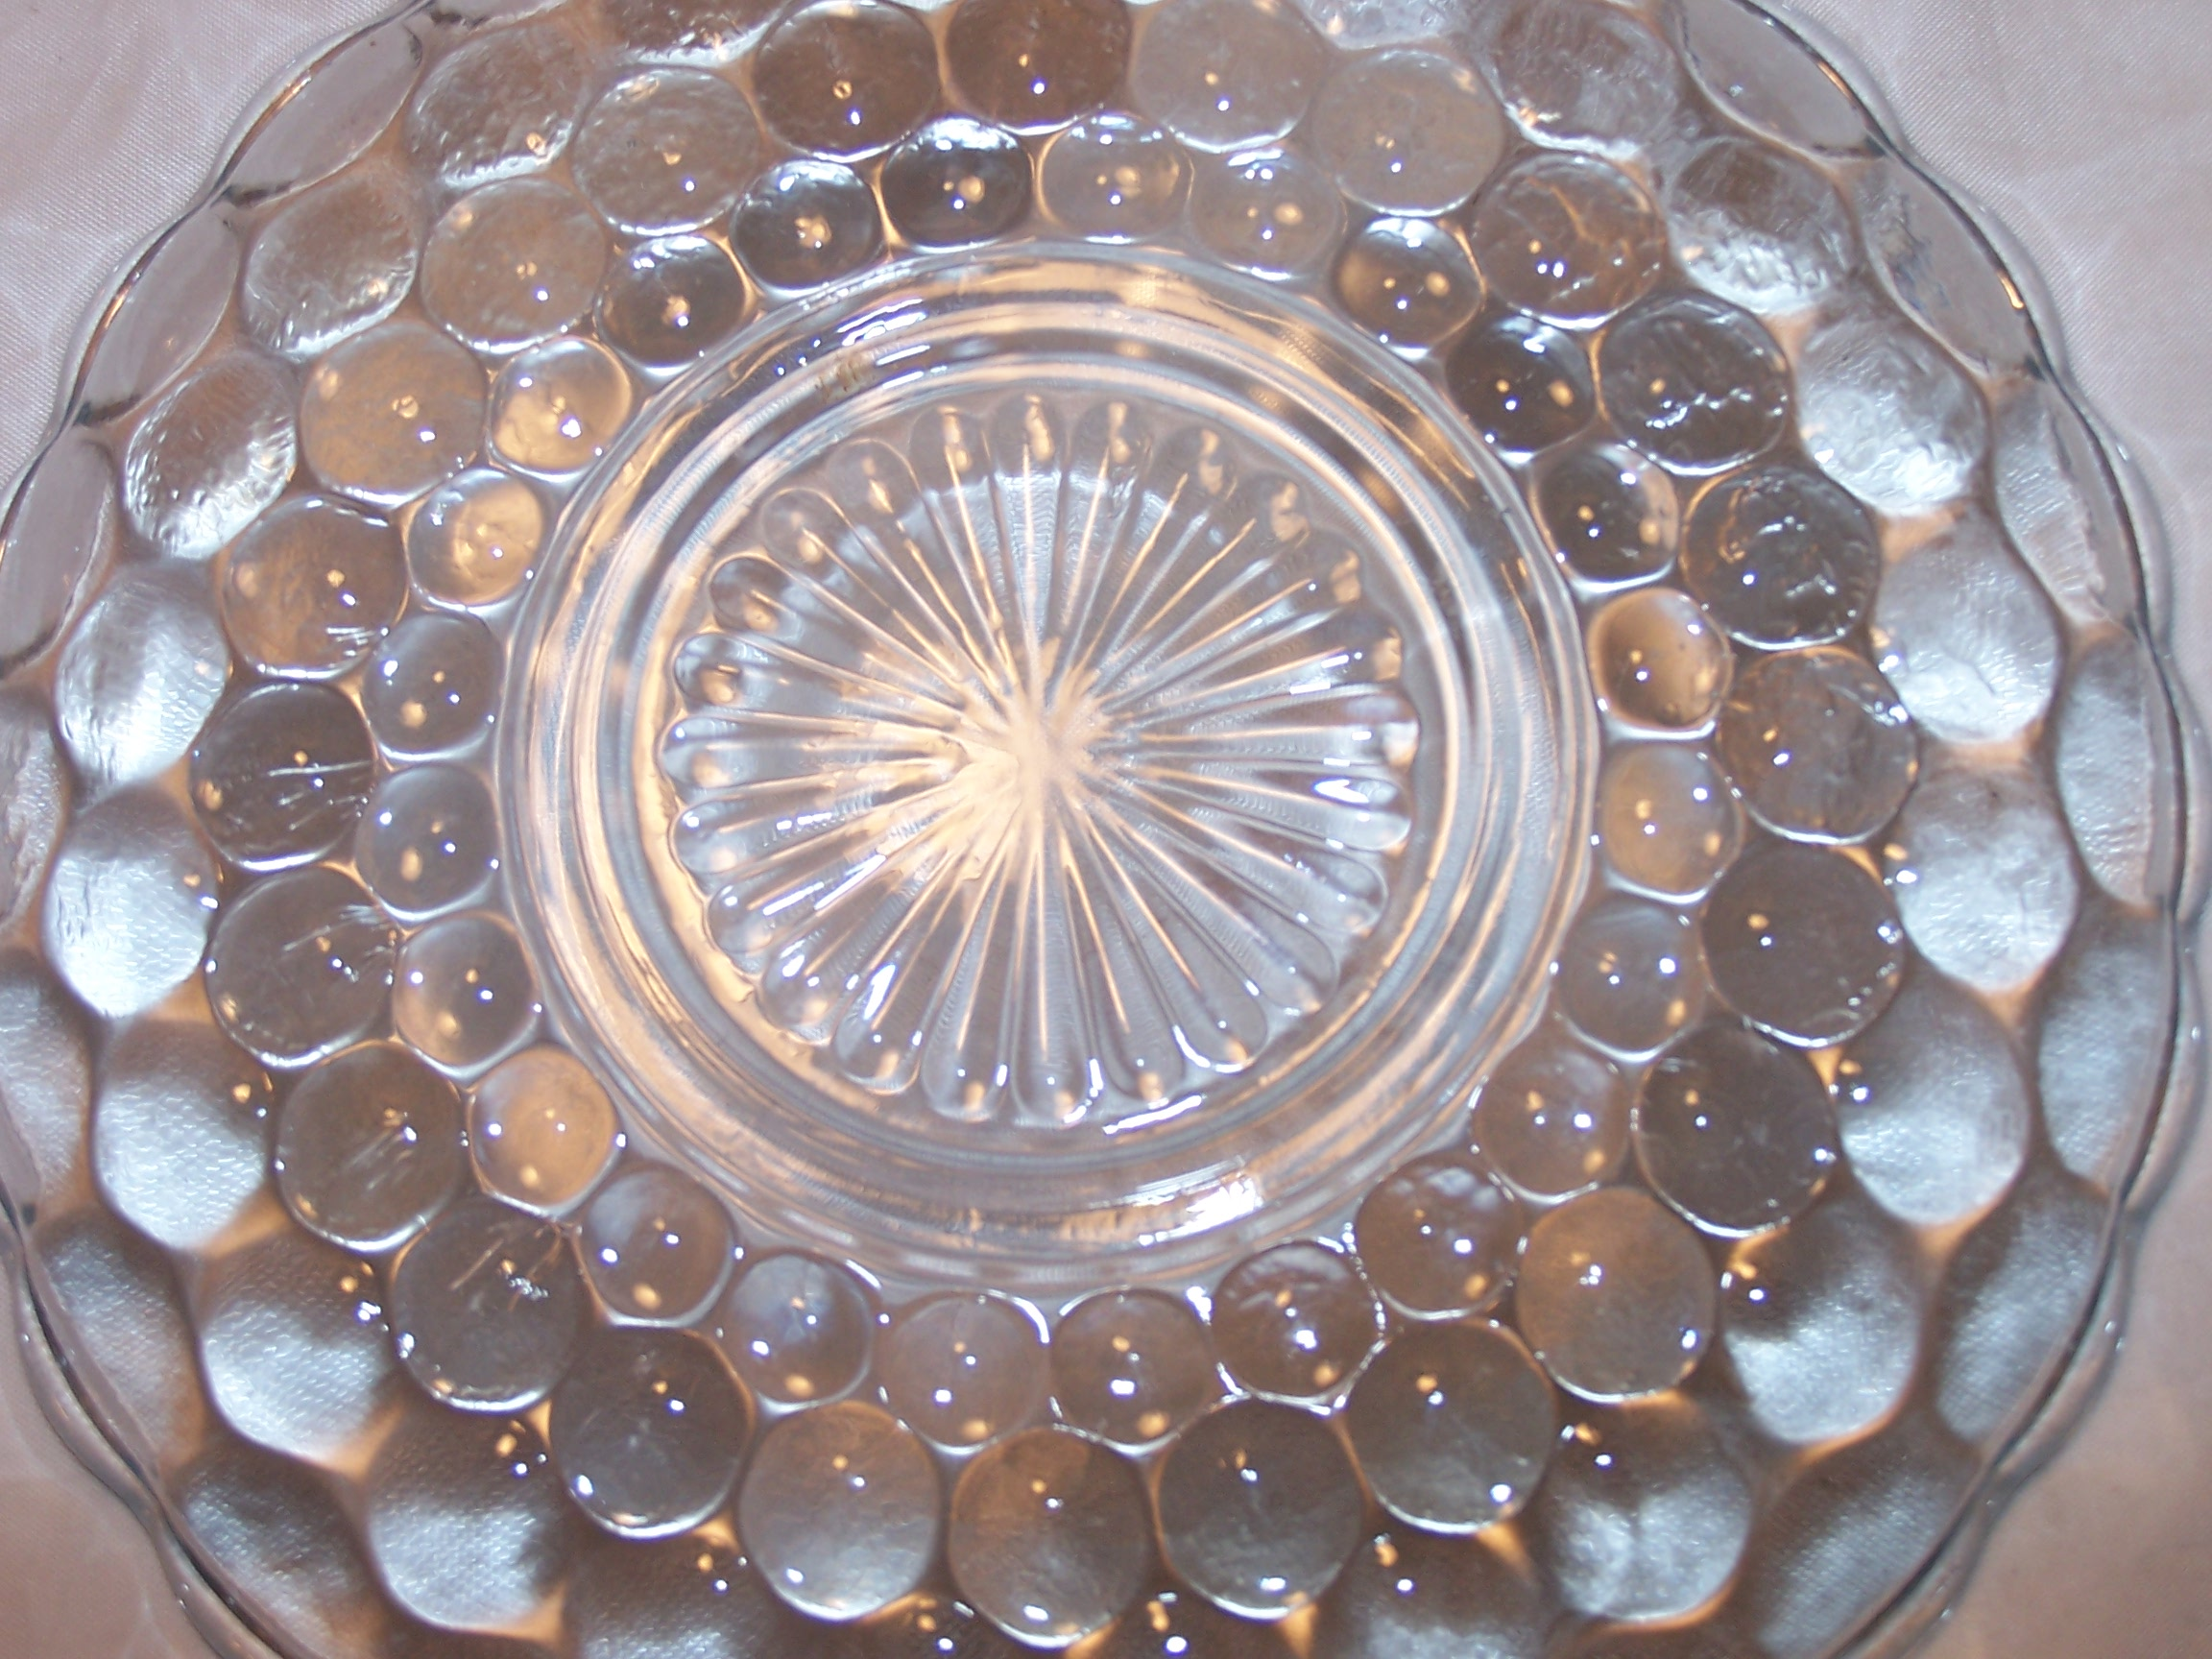 Hobnail Glass Teacup, Saucer Service for 10, Vintage